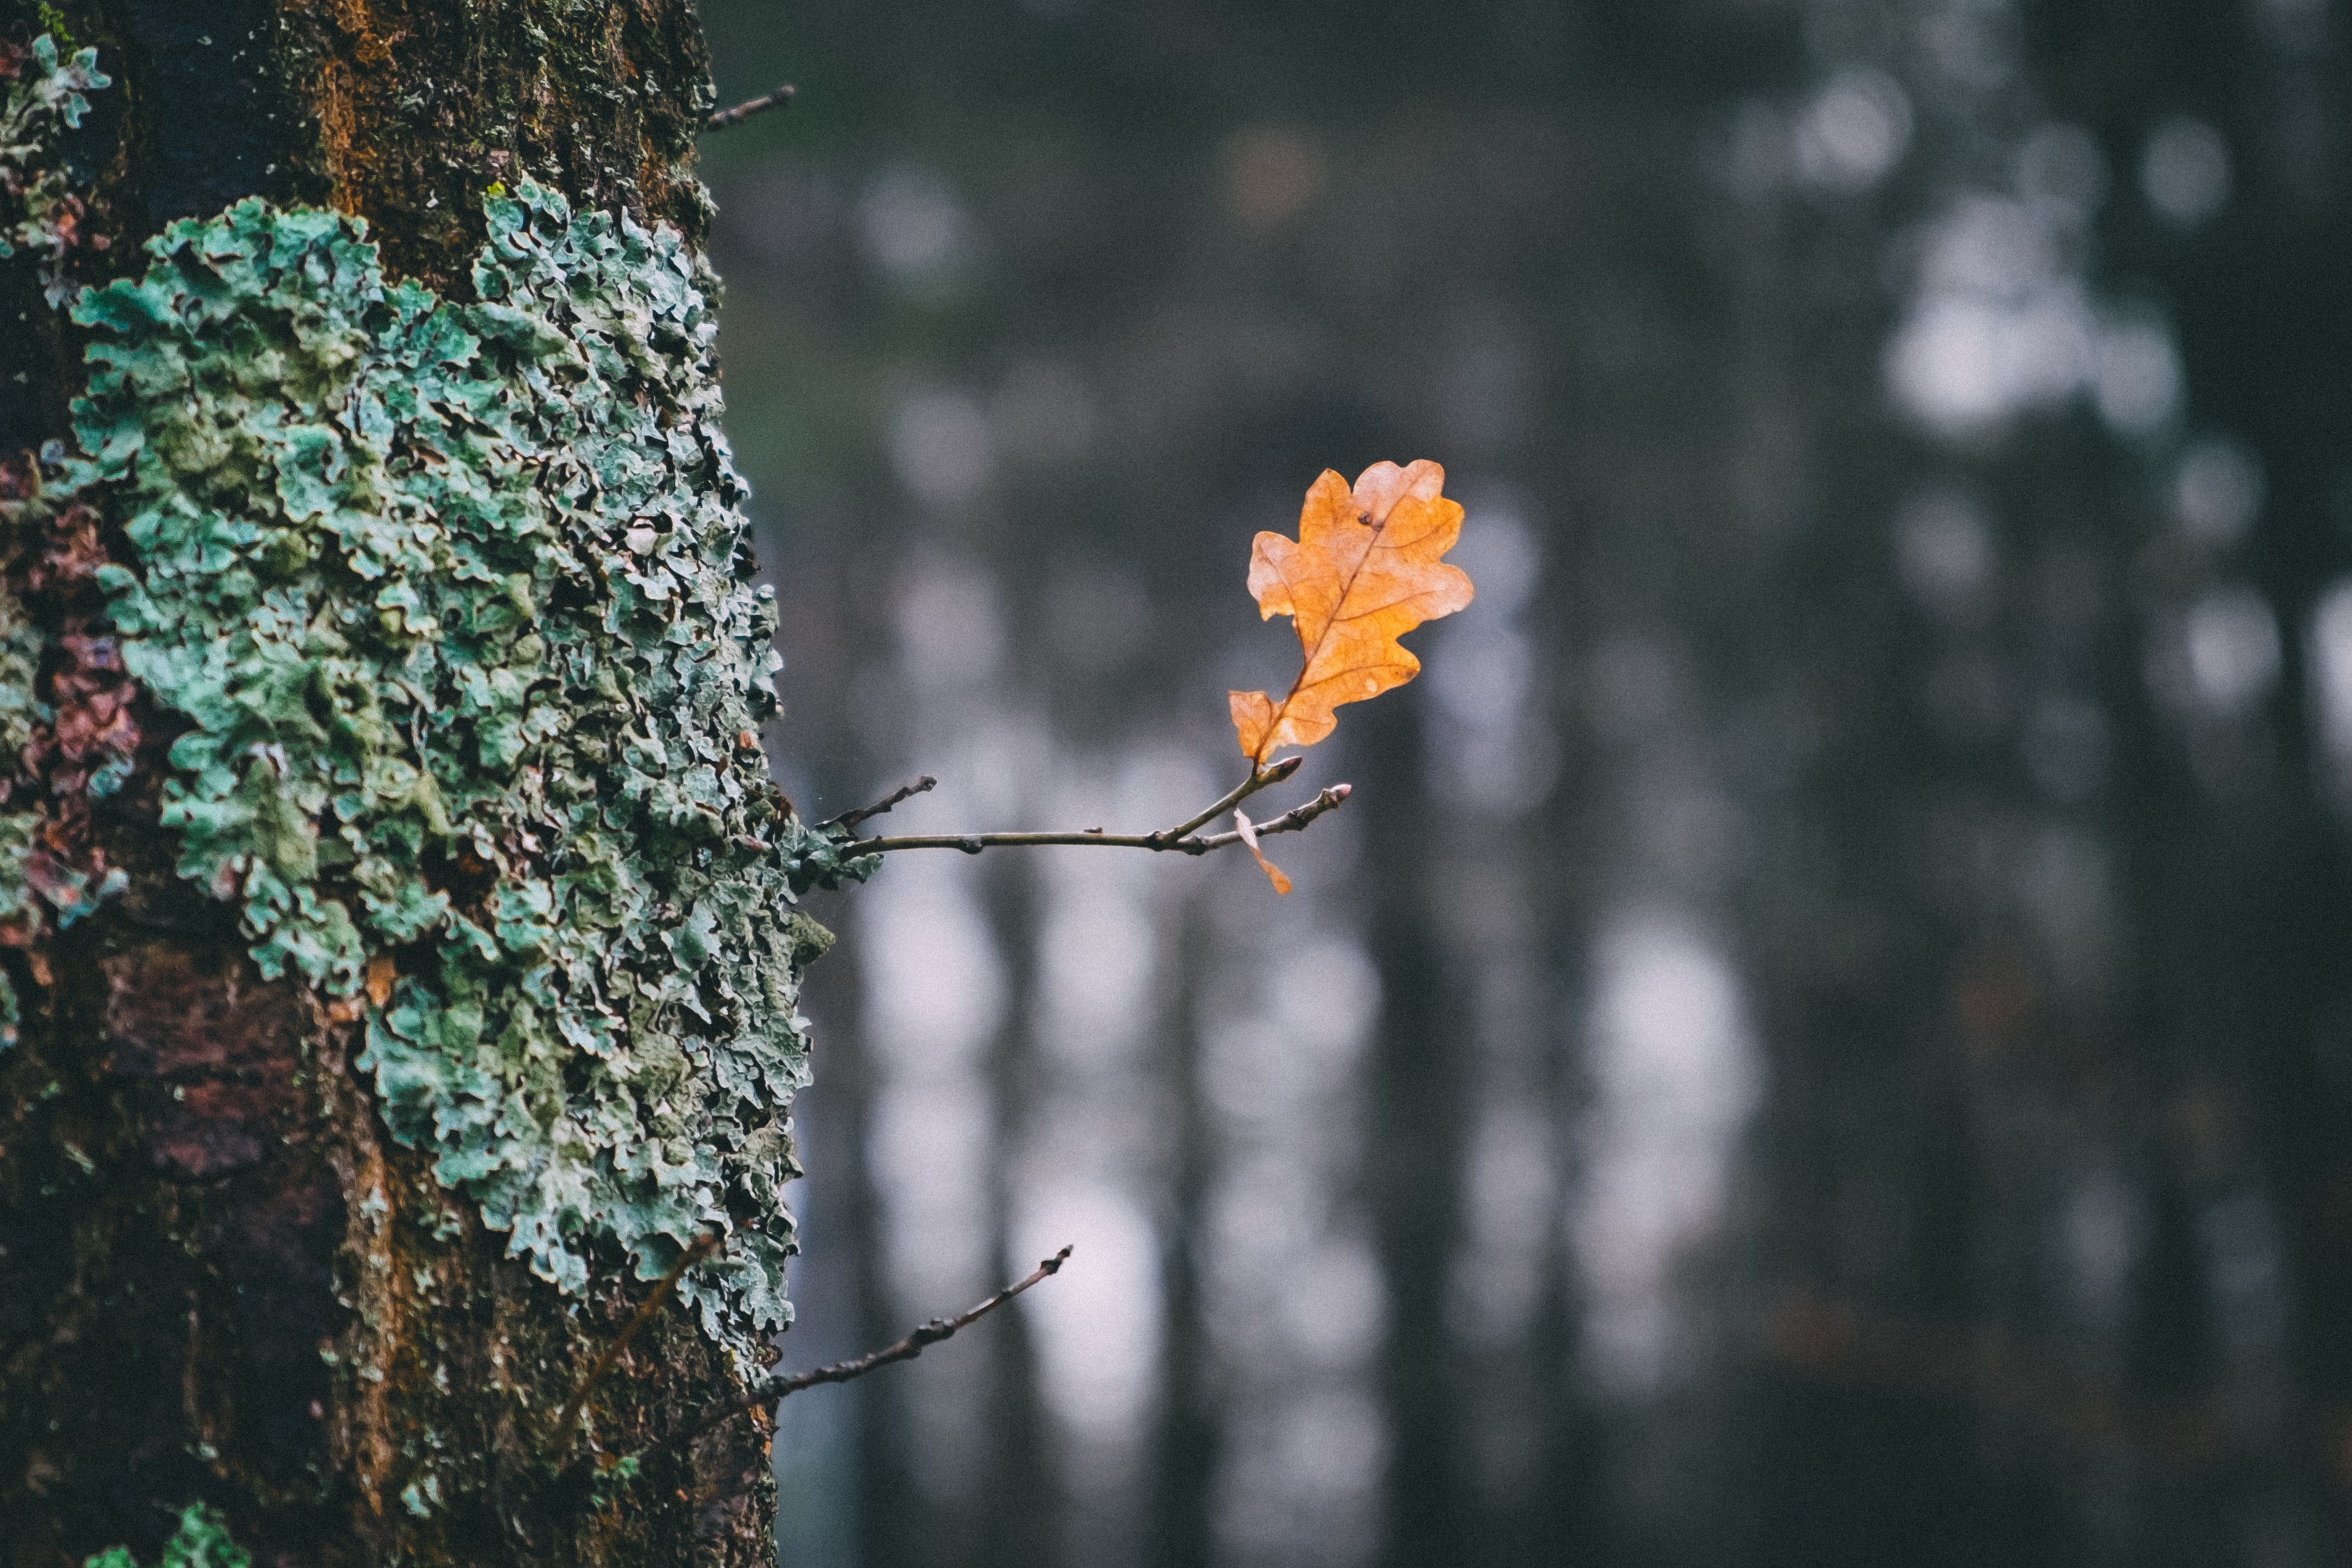 selective focus photography of withered leaf